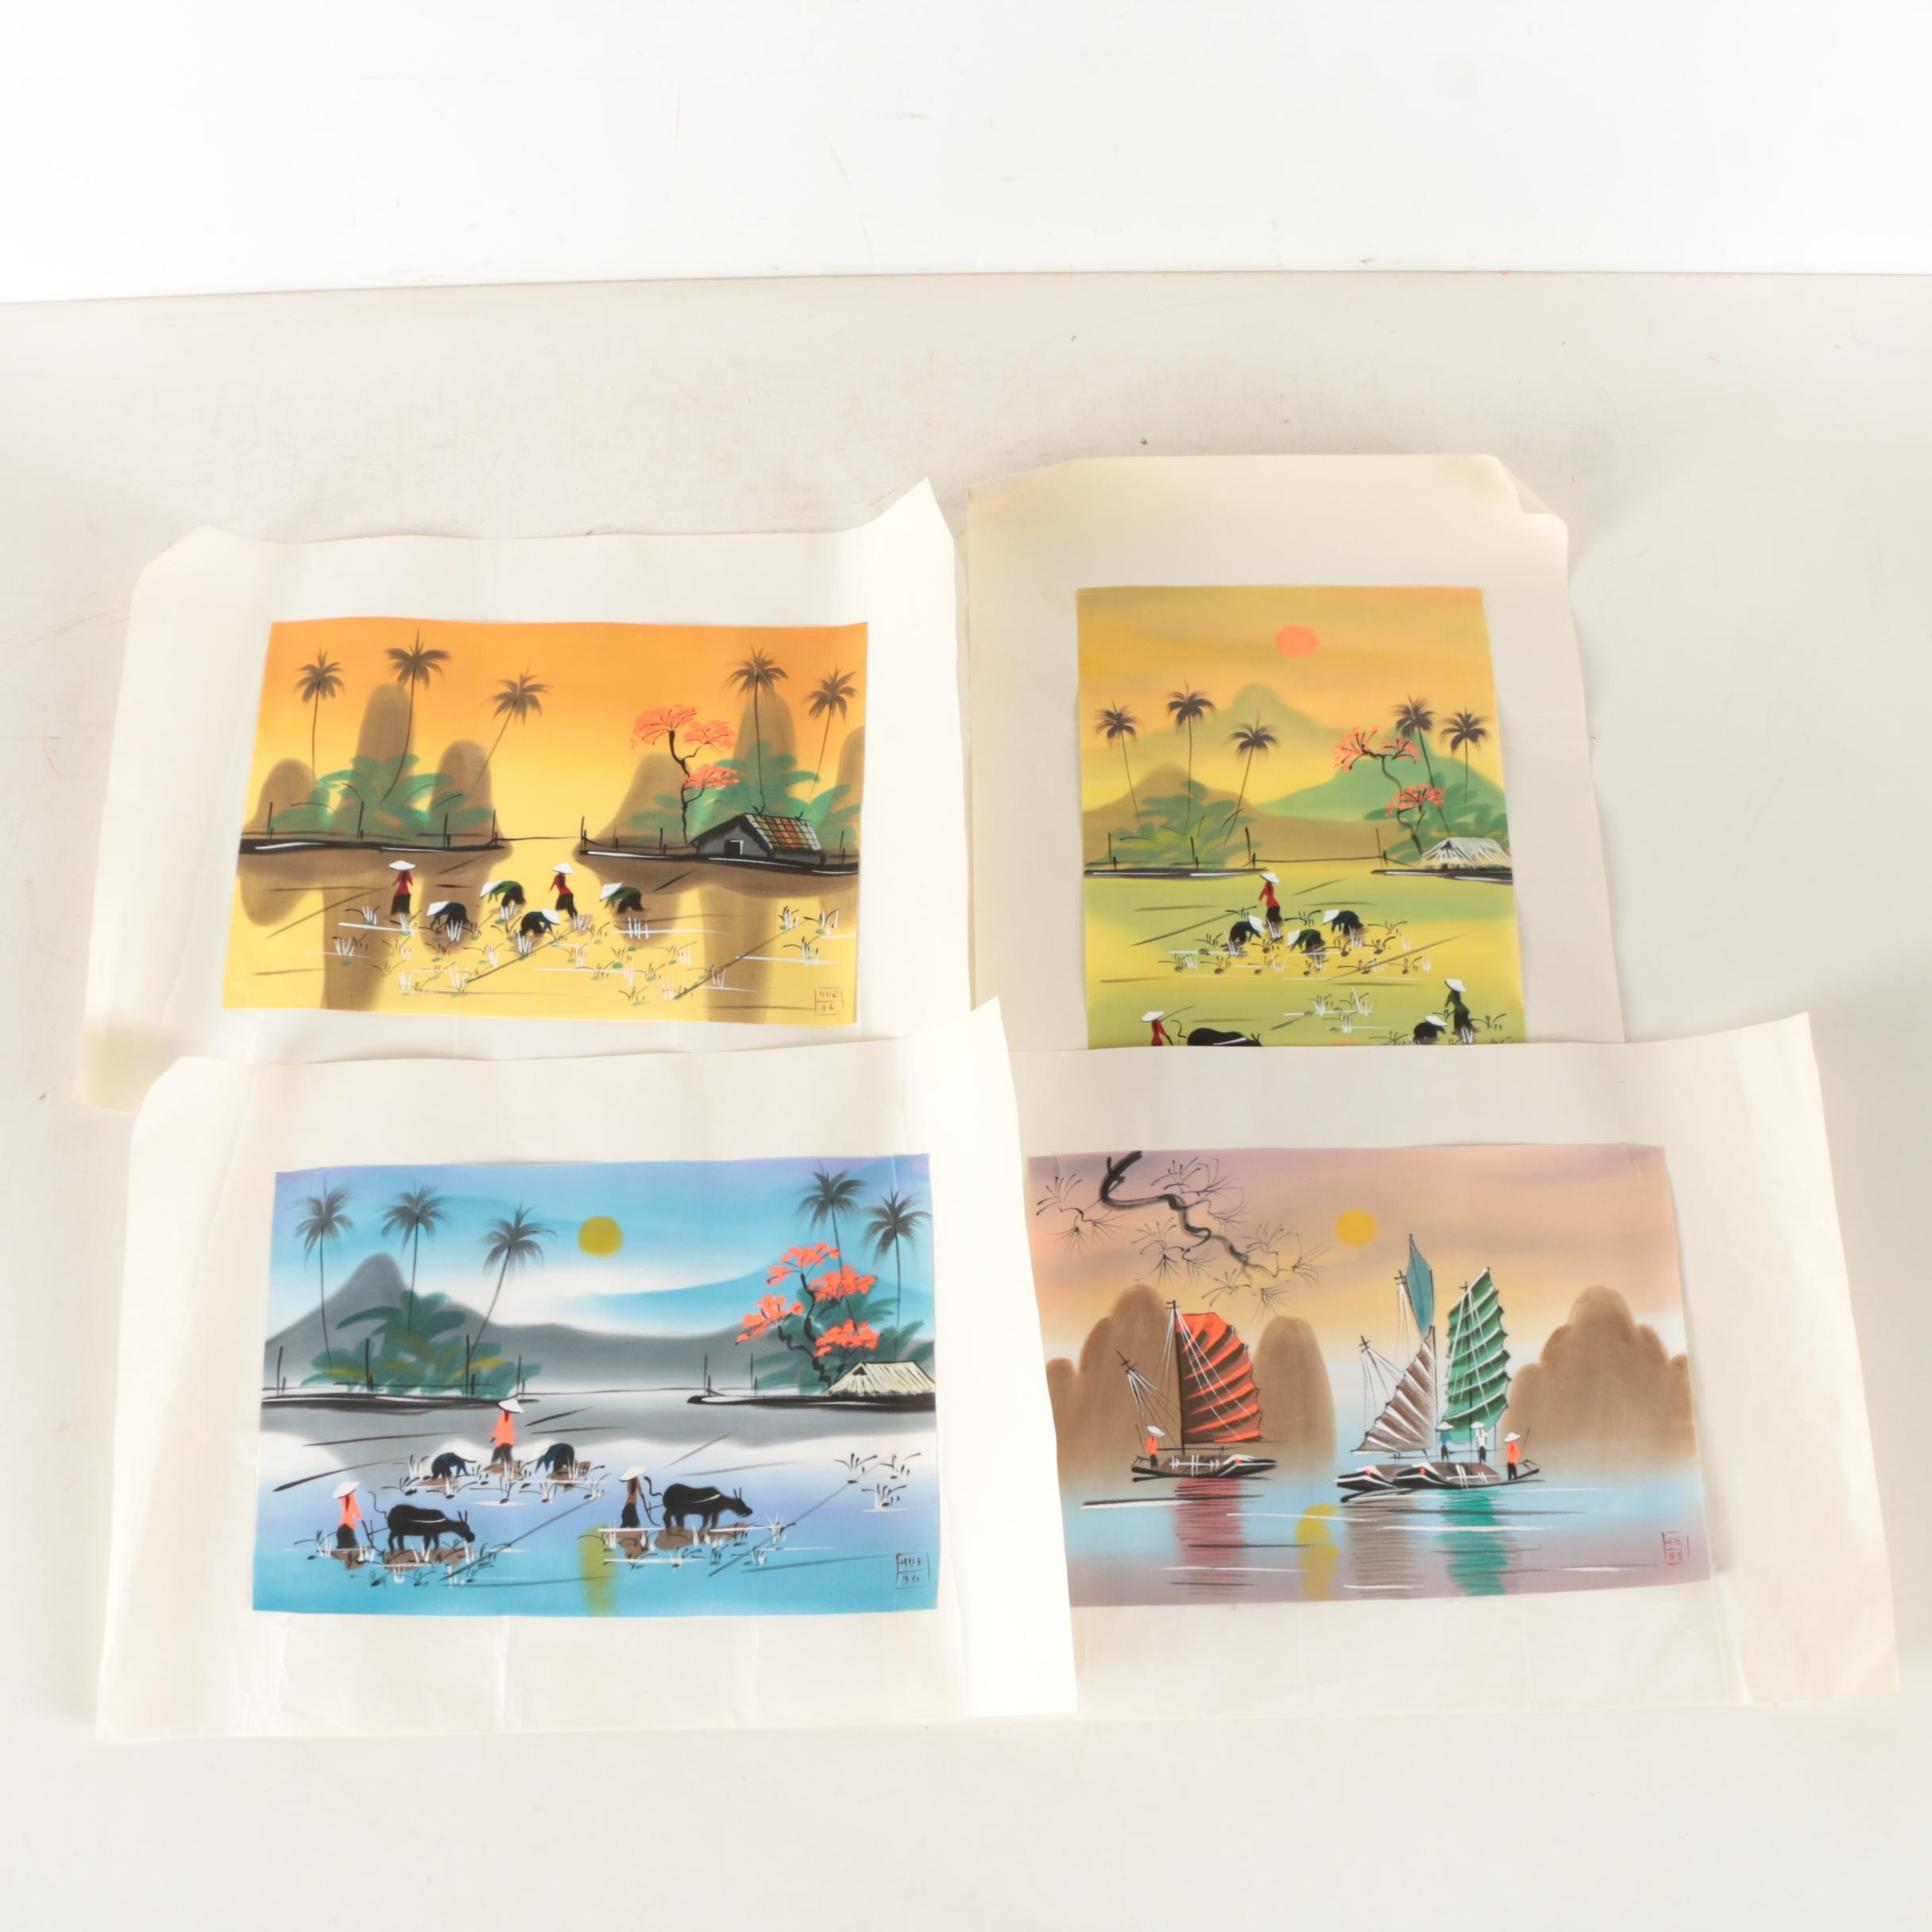 Four Hue 1990s Gouache Paintings on Fabric of Southeast Asian Scenes